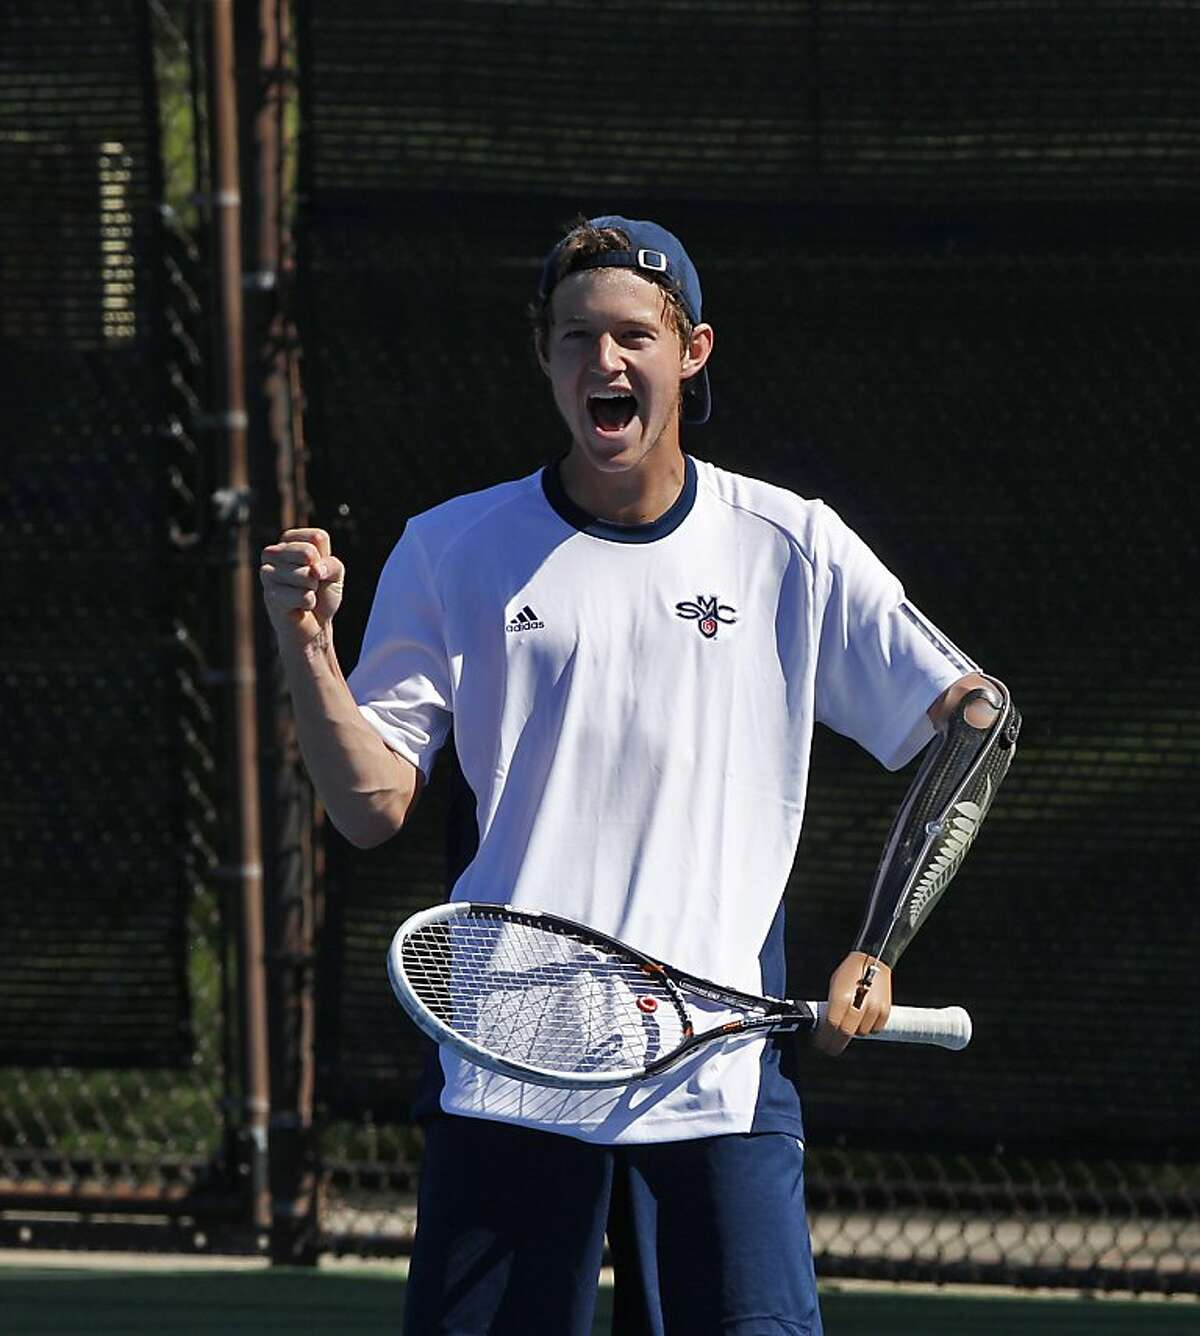 Alex Hunt celebrates a point against his doubles opponent on Wednesday, April 10, 2013. Hunt is a freshman tennis player from New Zealand at St. Mary's College in Moraga, Calif. But that's not what makes him standout, he's playing Div. I tennis with a prosthetic left arm.